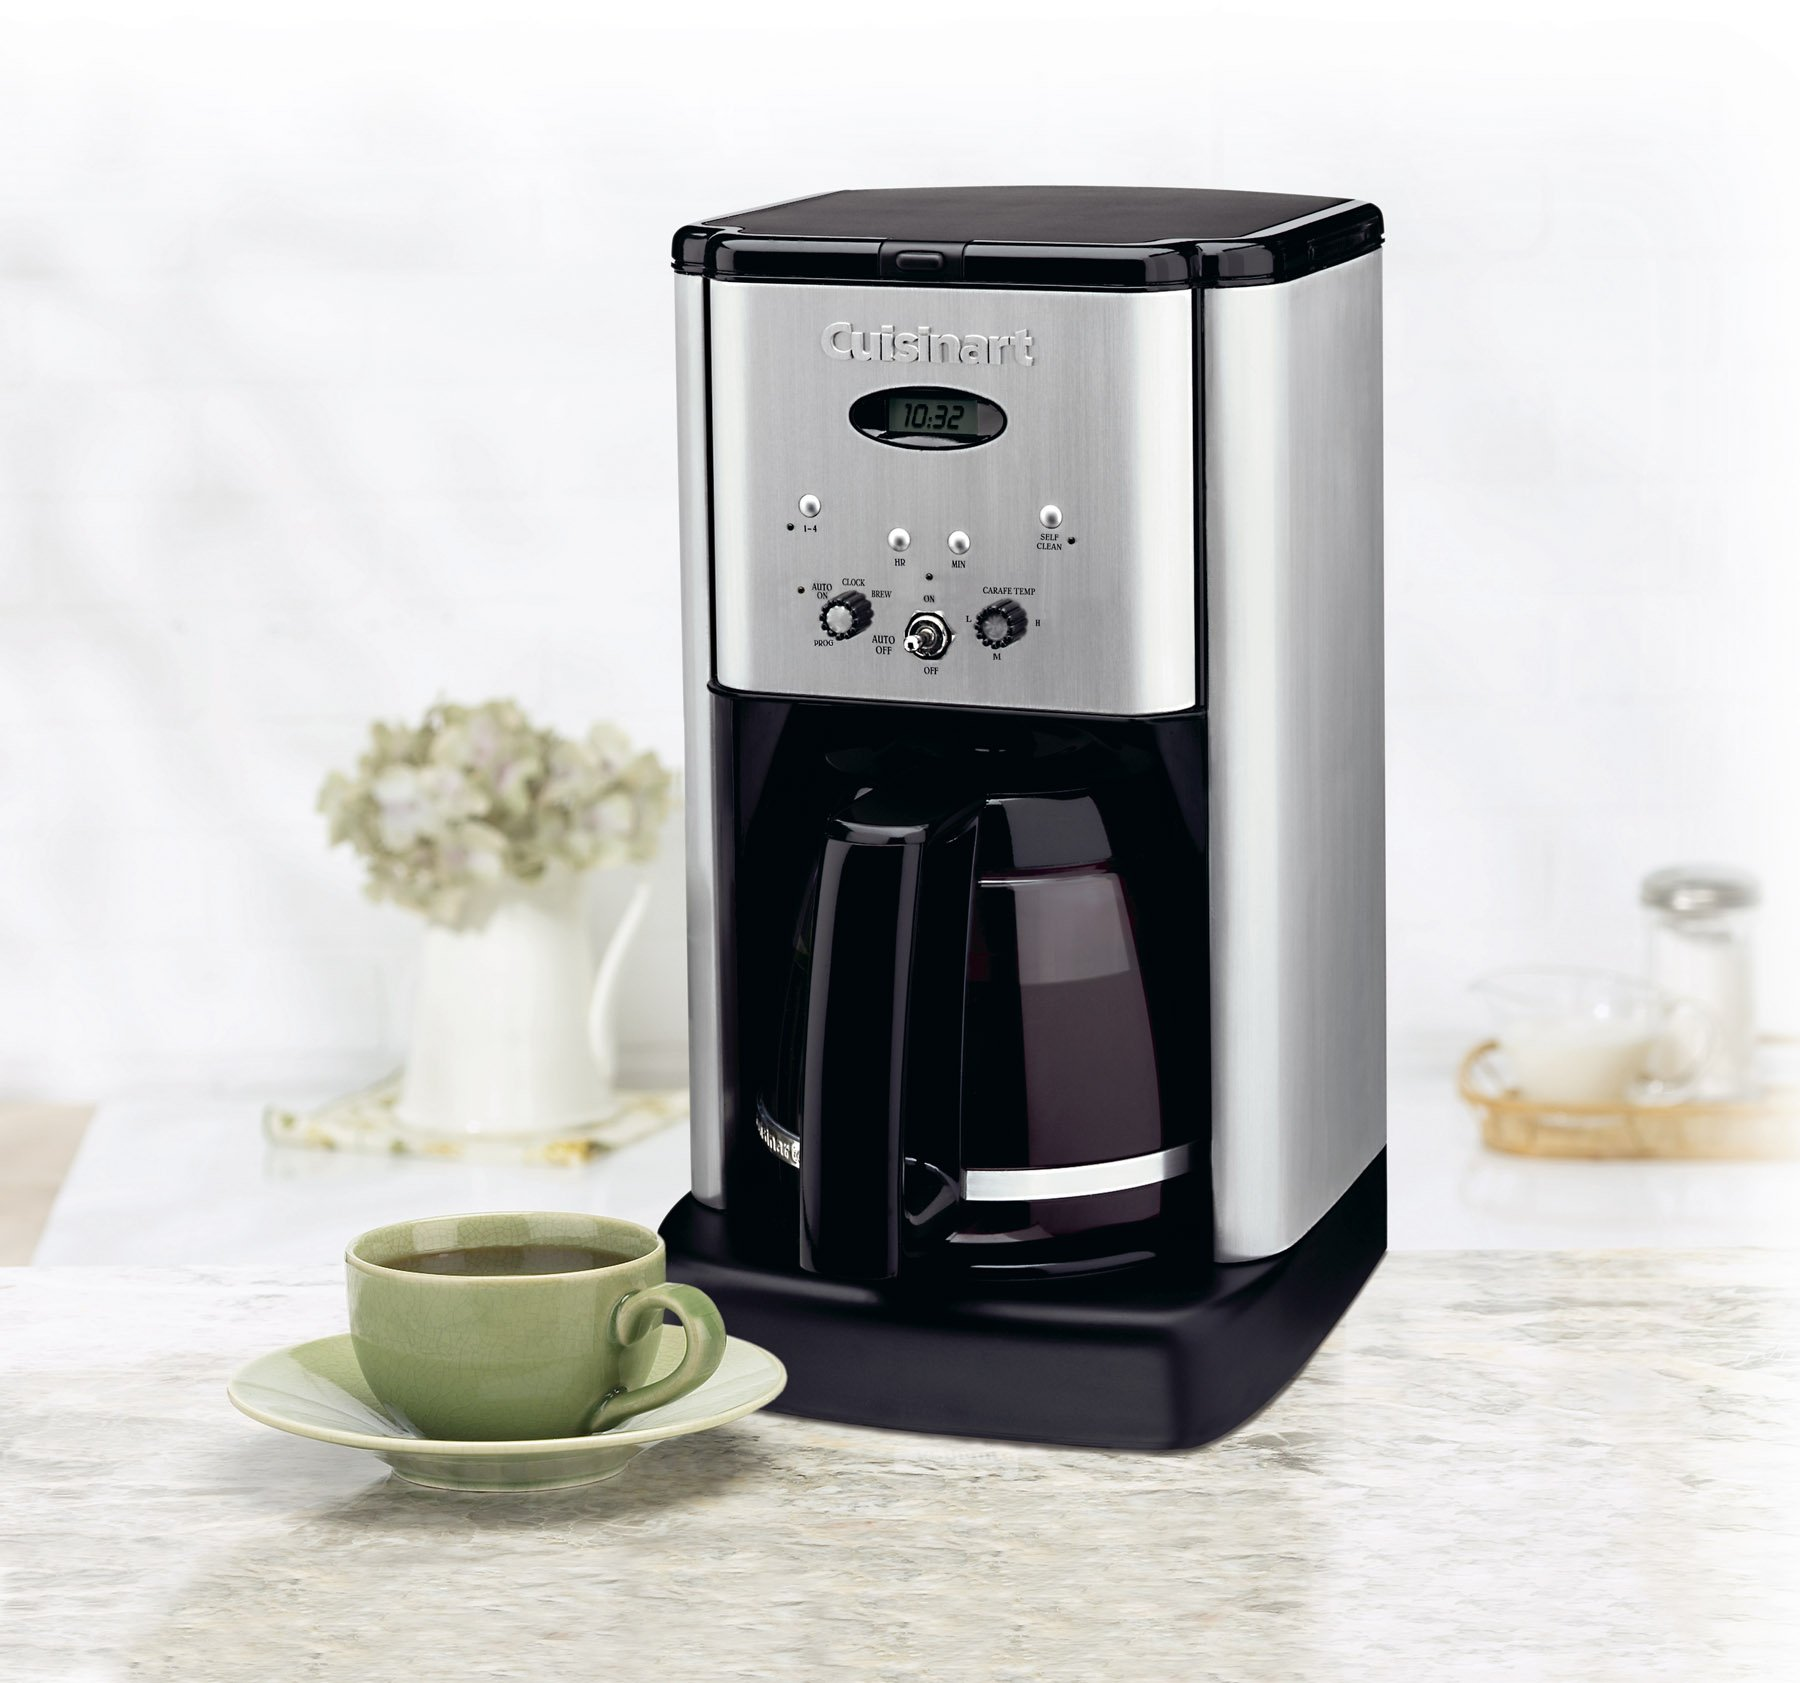 Cuisinart DCC-1200 Brew Central 12 Cup Programmable Coffeemaker, Black/Silver by Cuisinart (Image #7)